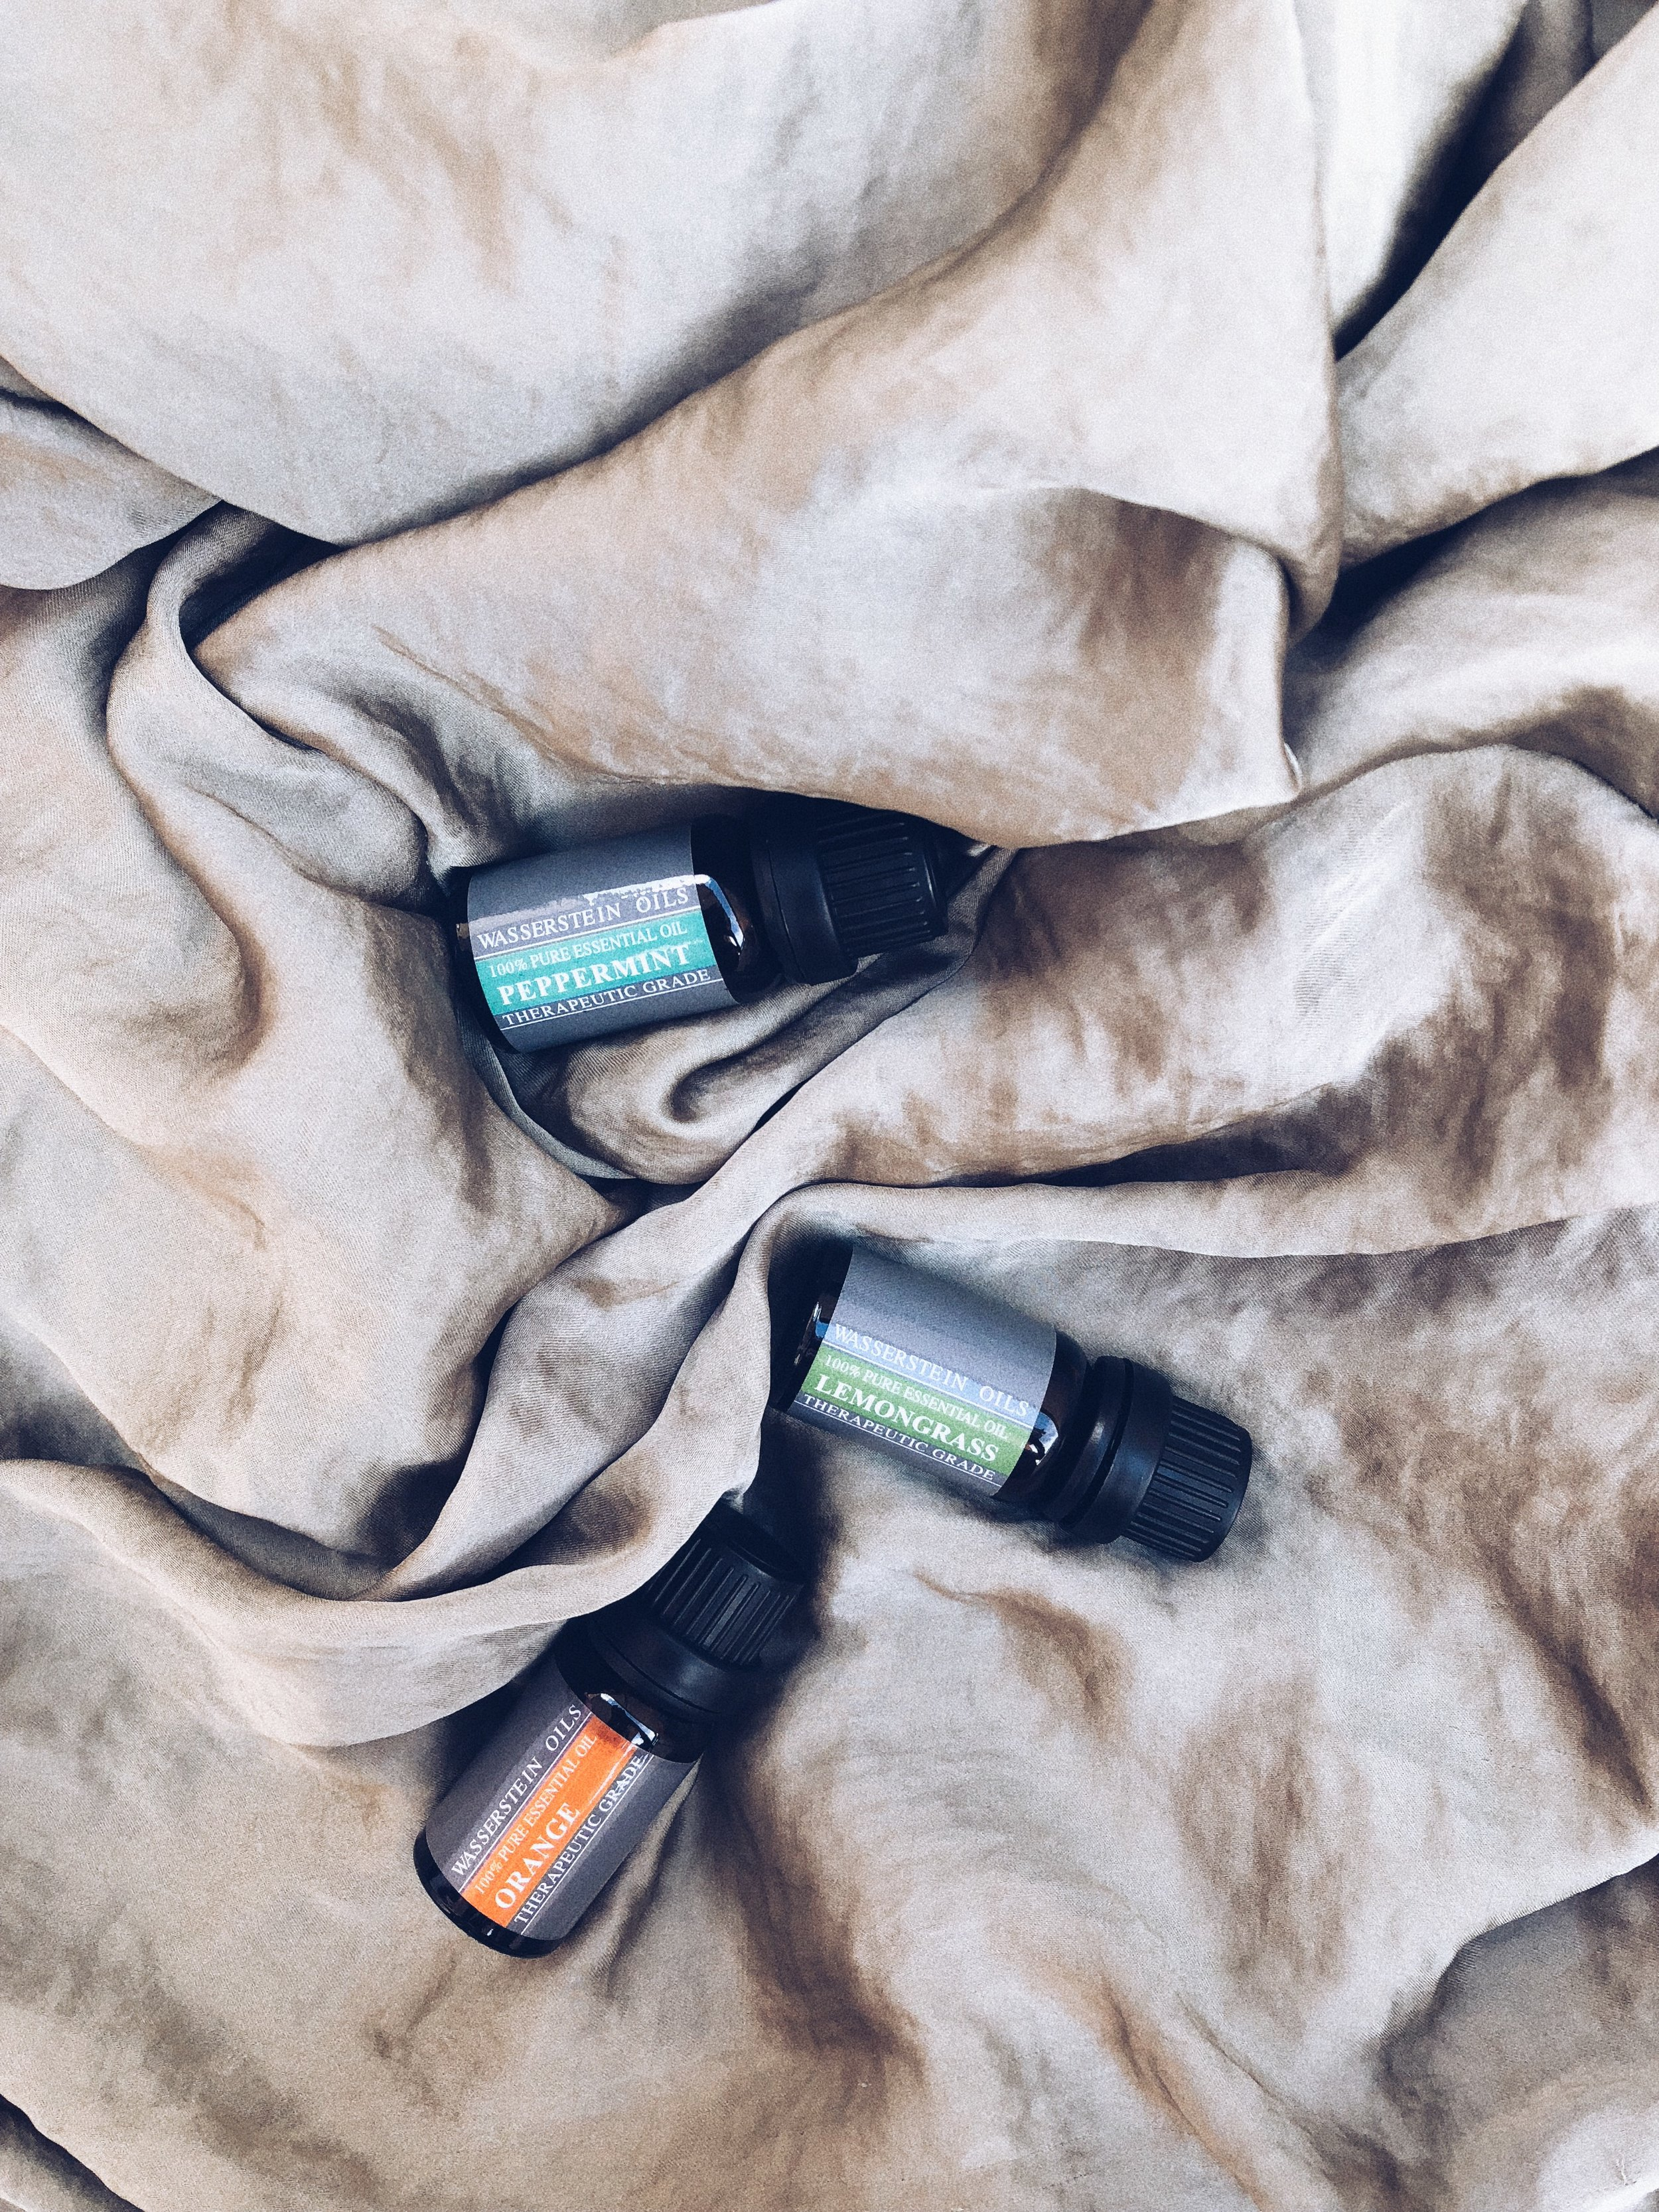 I'M HUGE WITH   ESSENTIAL OILS  ! I NOT ONLY USE THEM IN MY DIFFUSOR BUT ALSO POP FEW DROPS IN MY SHOWER BEFORE I GO IN - I SWEAR, MY WHOLE BATHROOM JUST SMELLS AMAZING. IT'S BEST TO JUST GET A SET IN THE BEGINNING, SO YOU CAN FIND OUT WHIC SCENTS SPEAK TO YOU THE MOST.- J